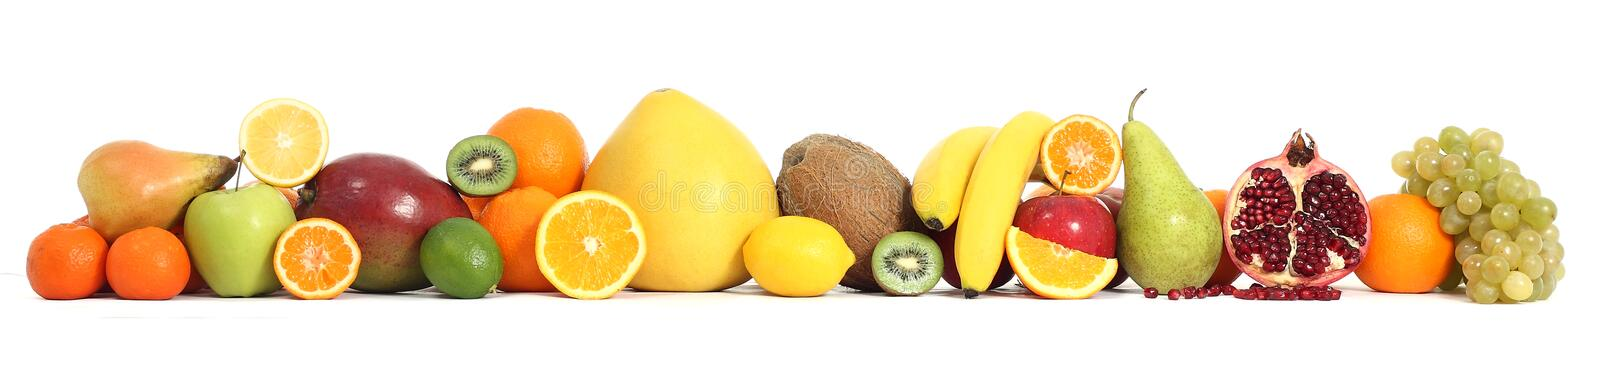 Food fruit stock photography